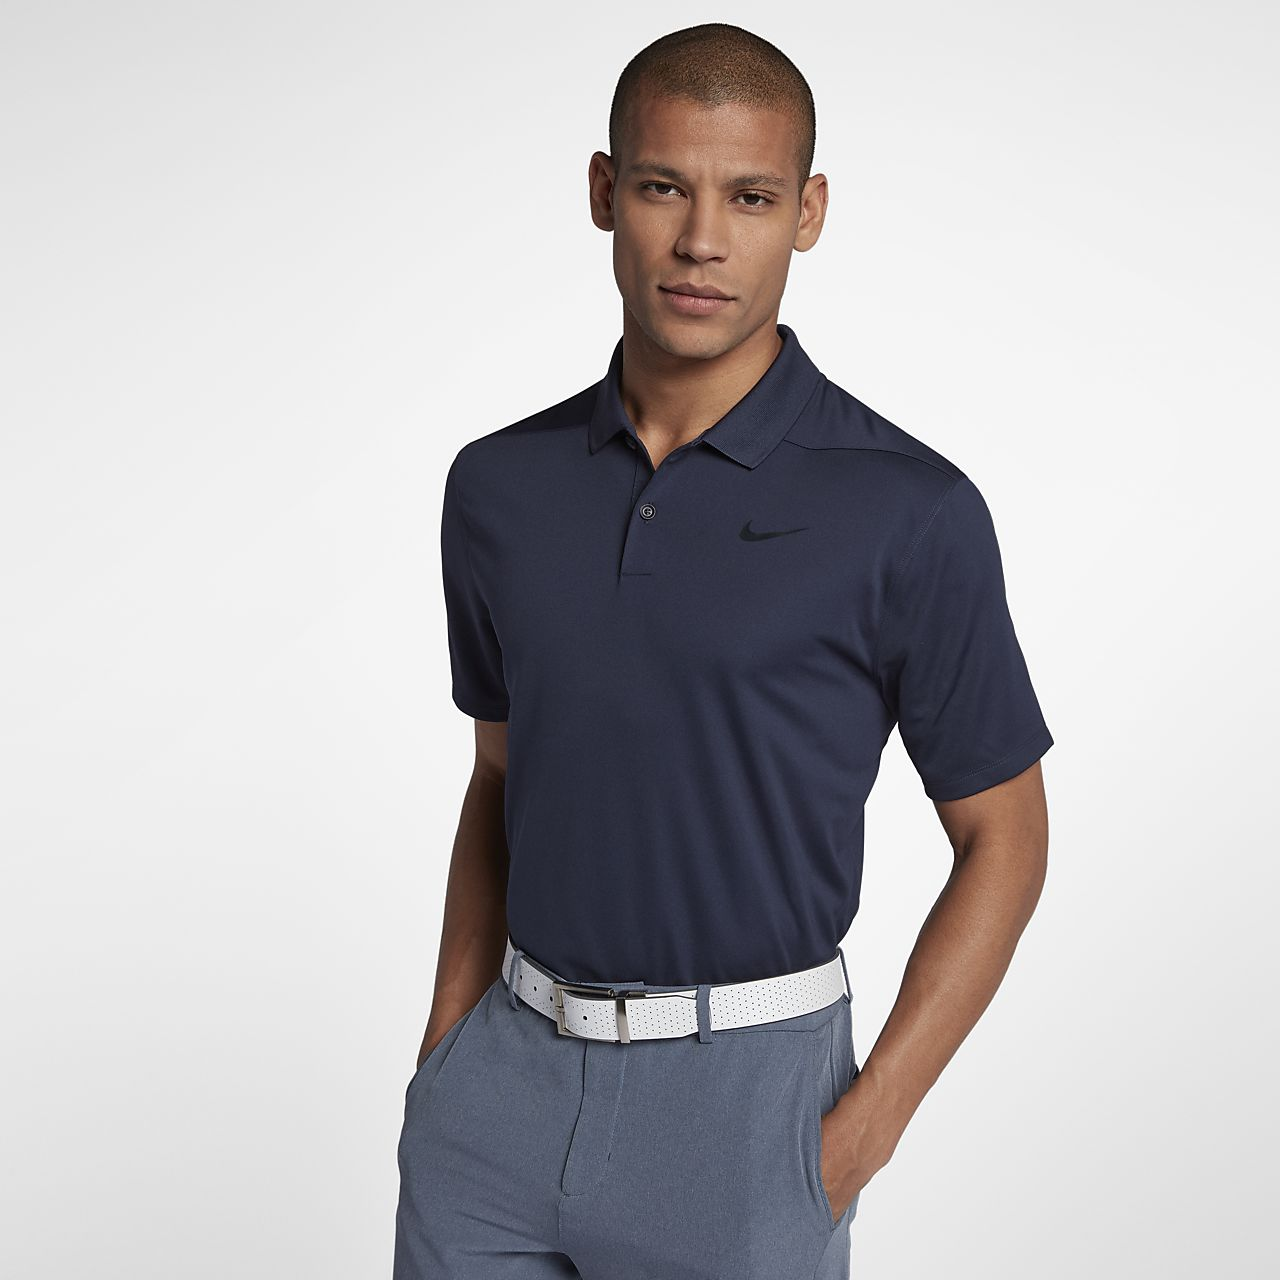 452e910d5b Nike Dri-FIT Victory Men s Golf Polo. Nike.com